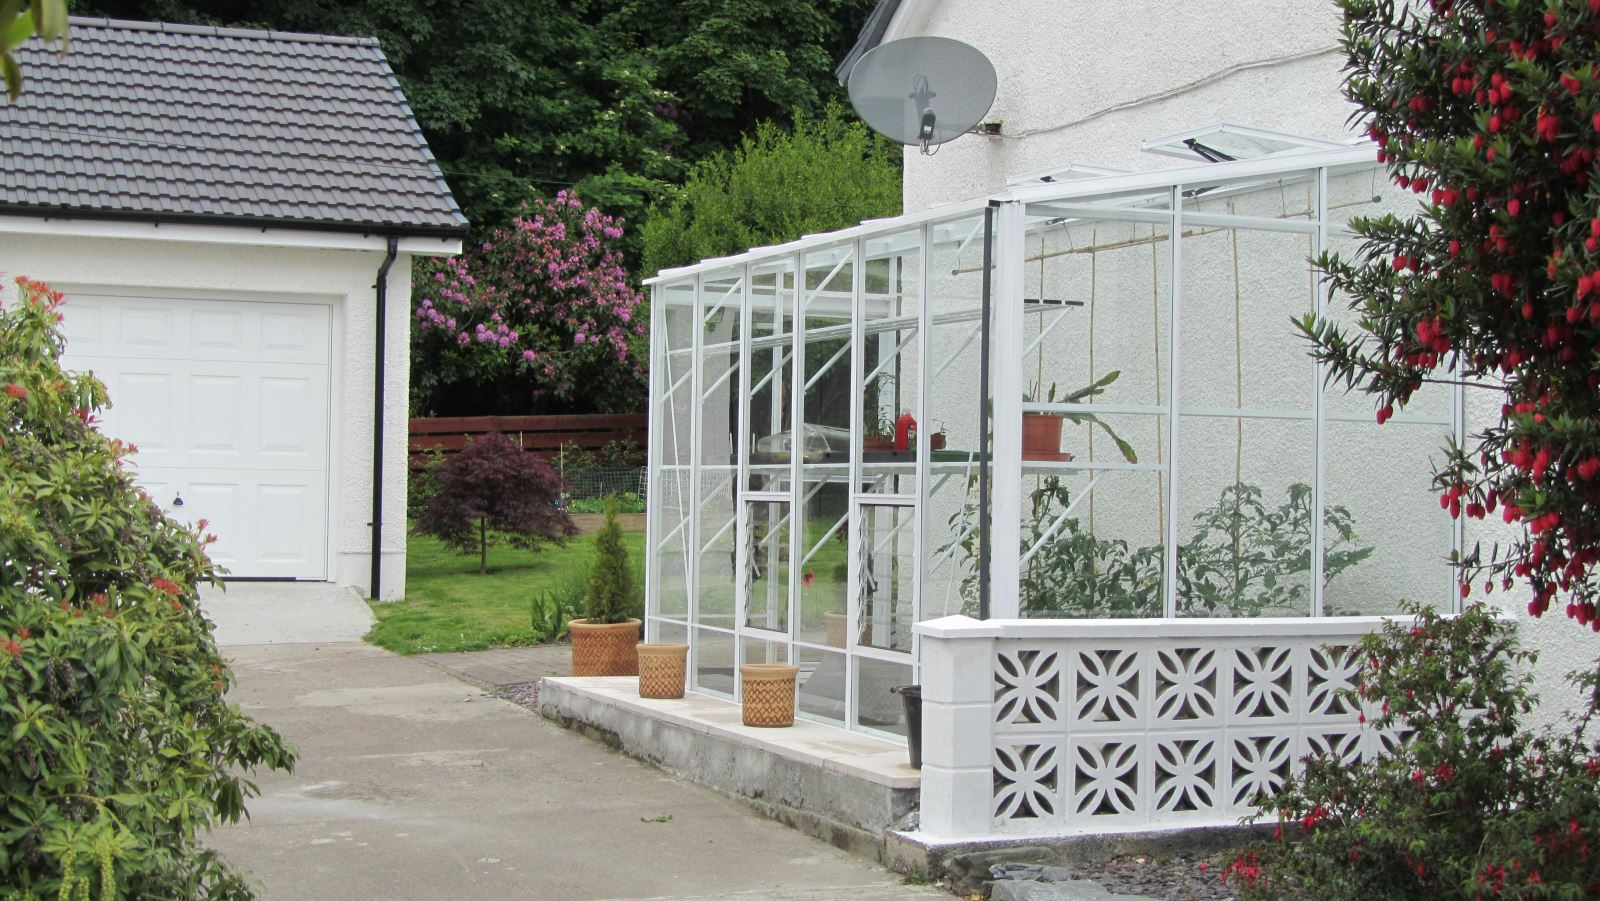 12ft x 6ft Robinsons Lean-to Greenhouse in White Colour Finish